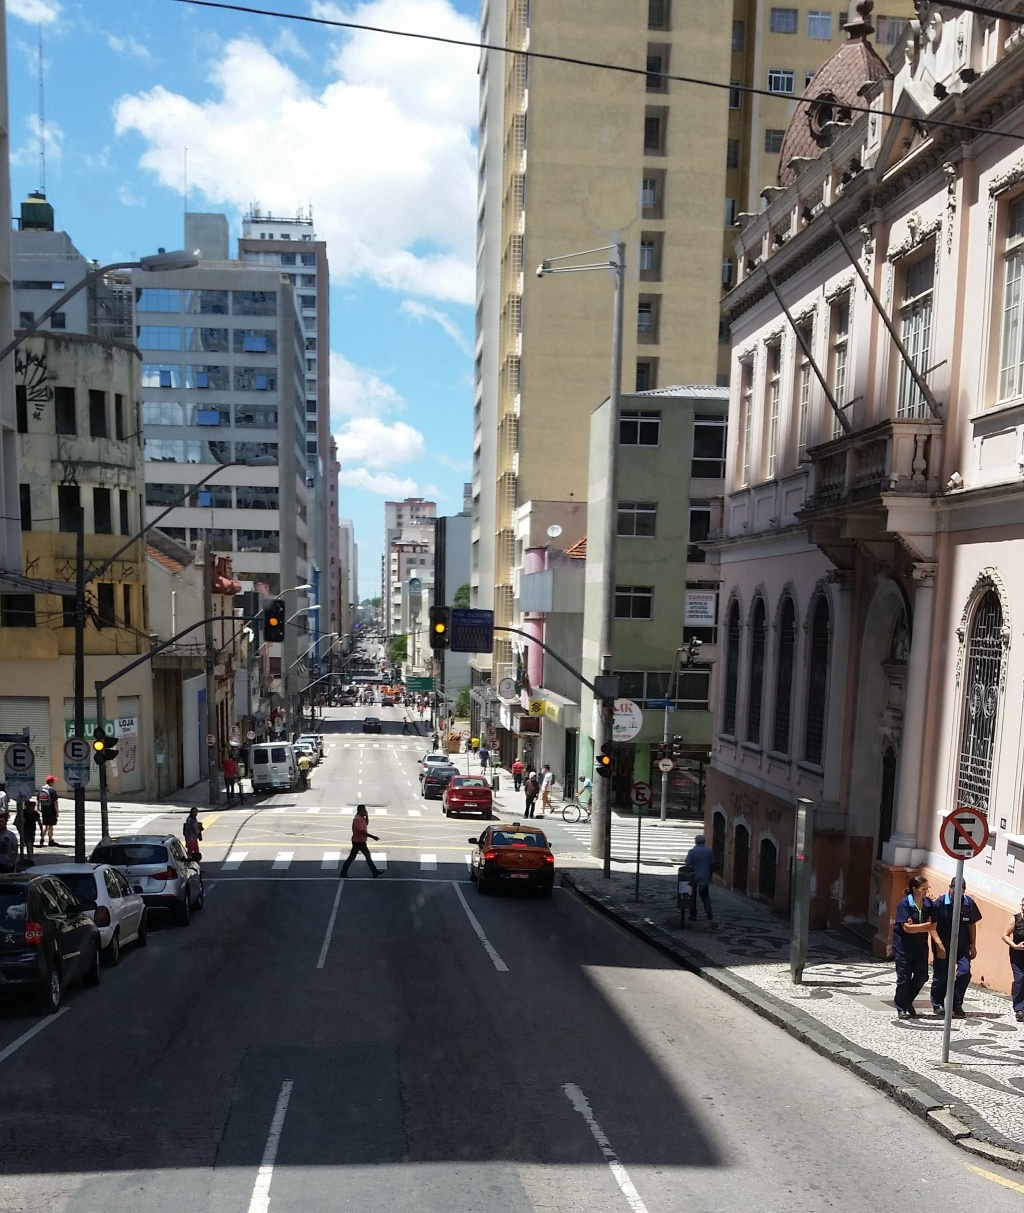 Downtown Curitiba contains modern highrises next to colonial style buildings.